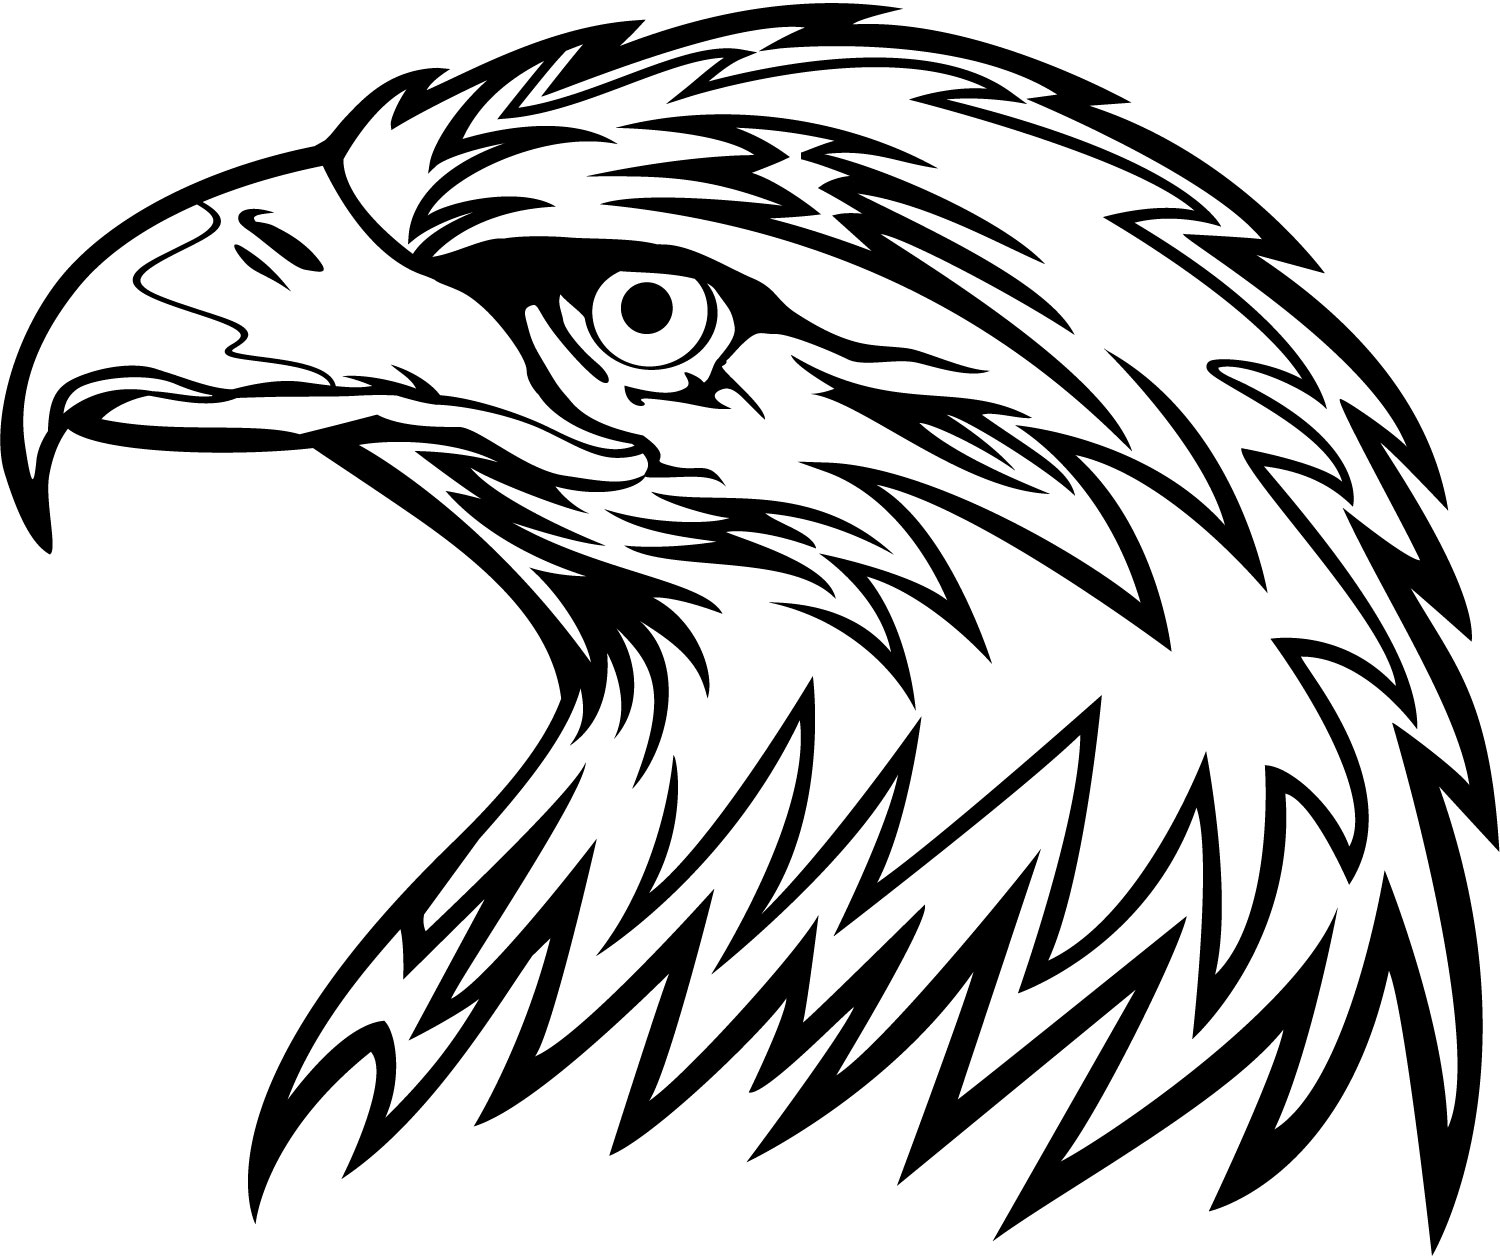 14 Bald Eagle Head Vector Images